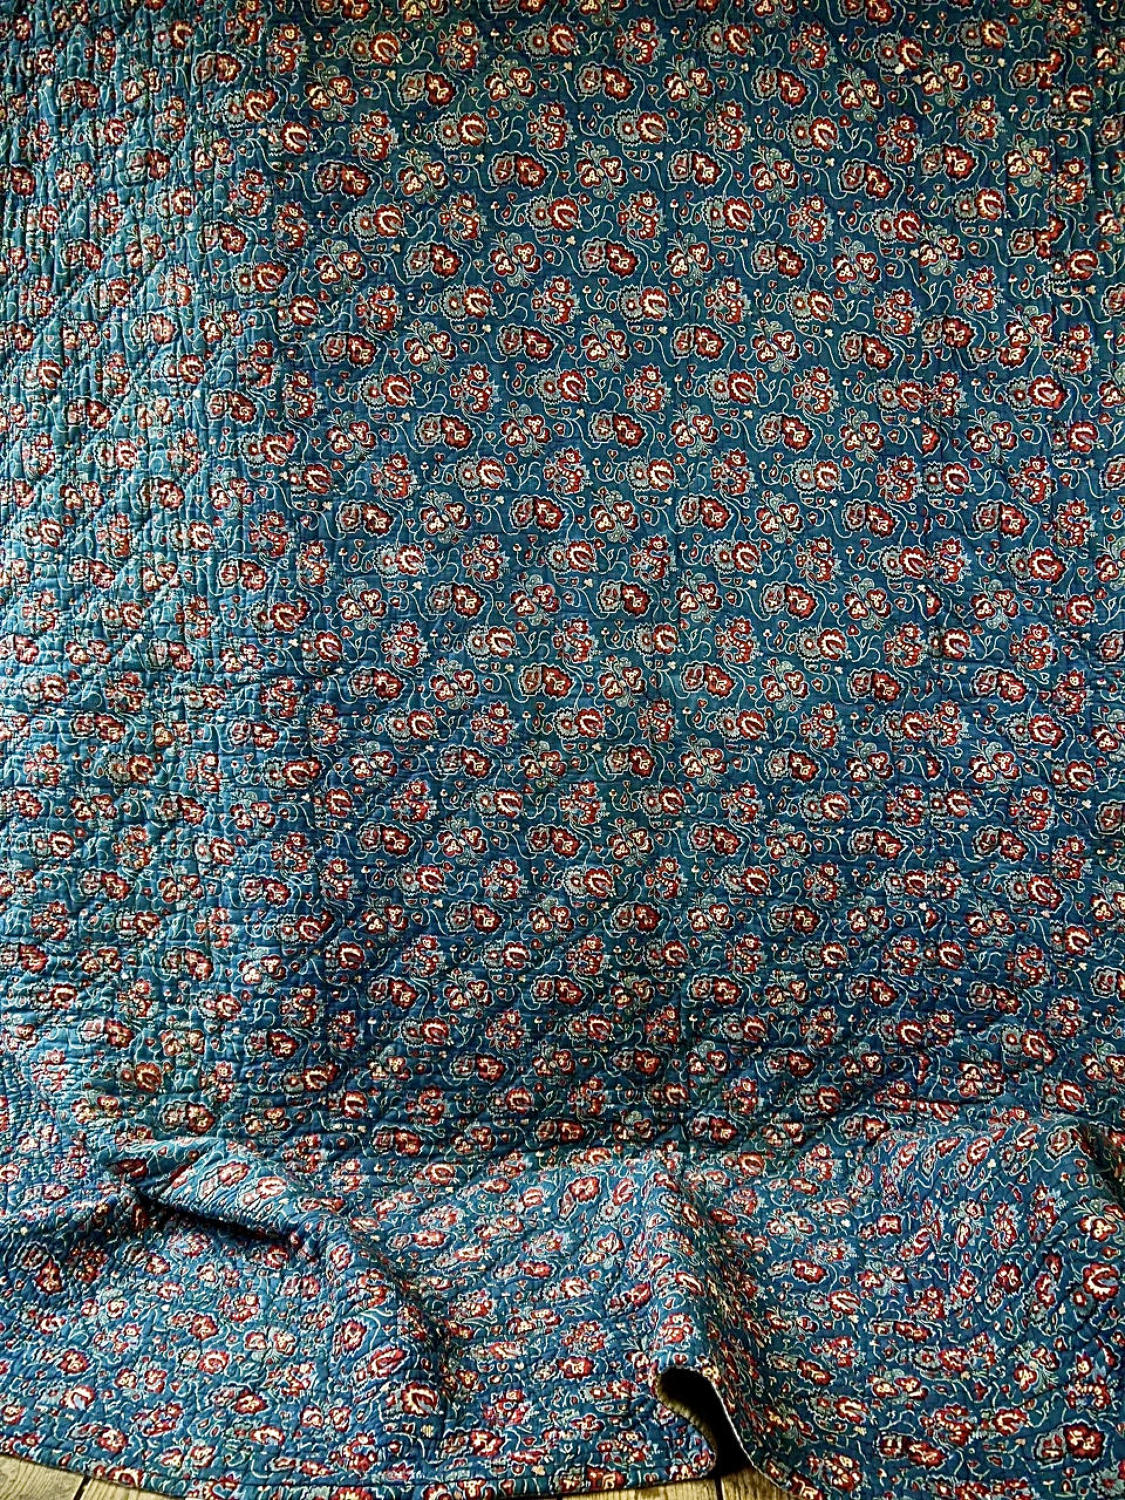 Indigo and Red Blockprinted Cotton Quilt French Early 19th Century